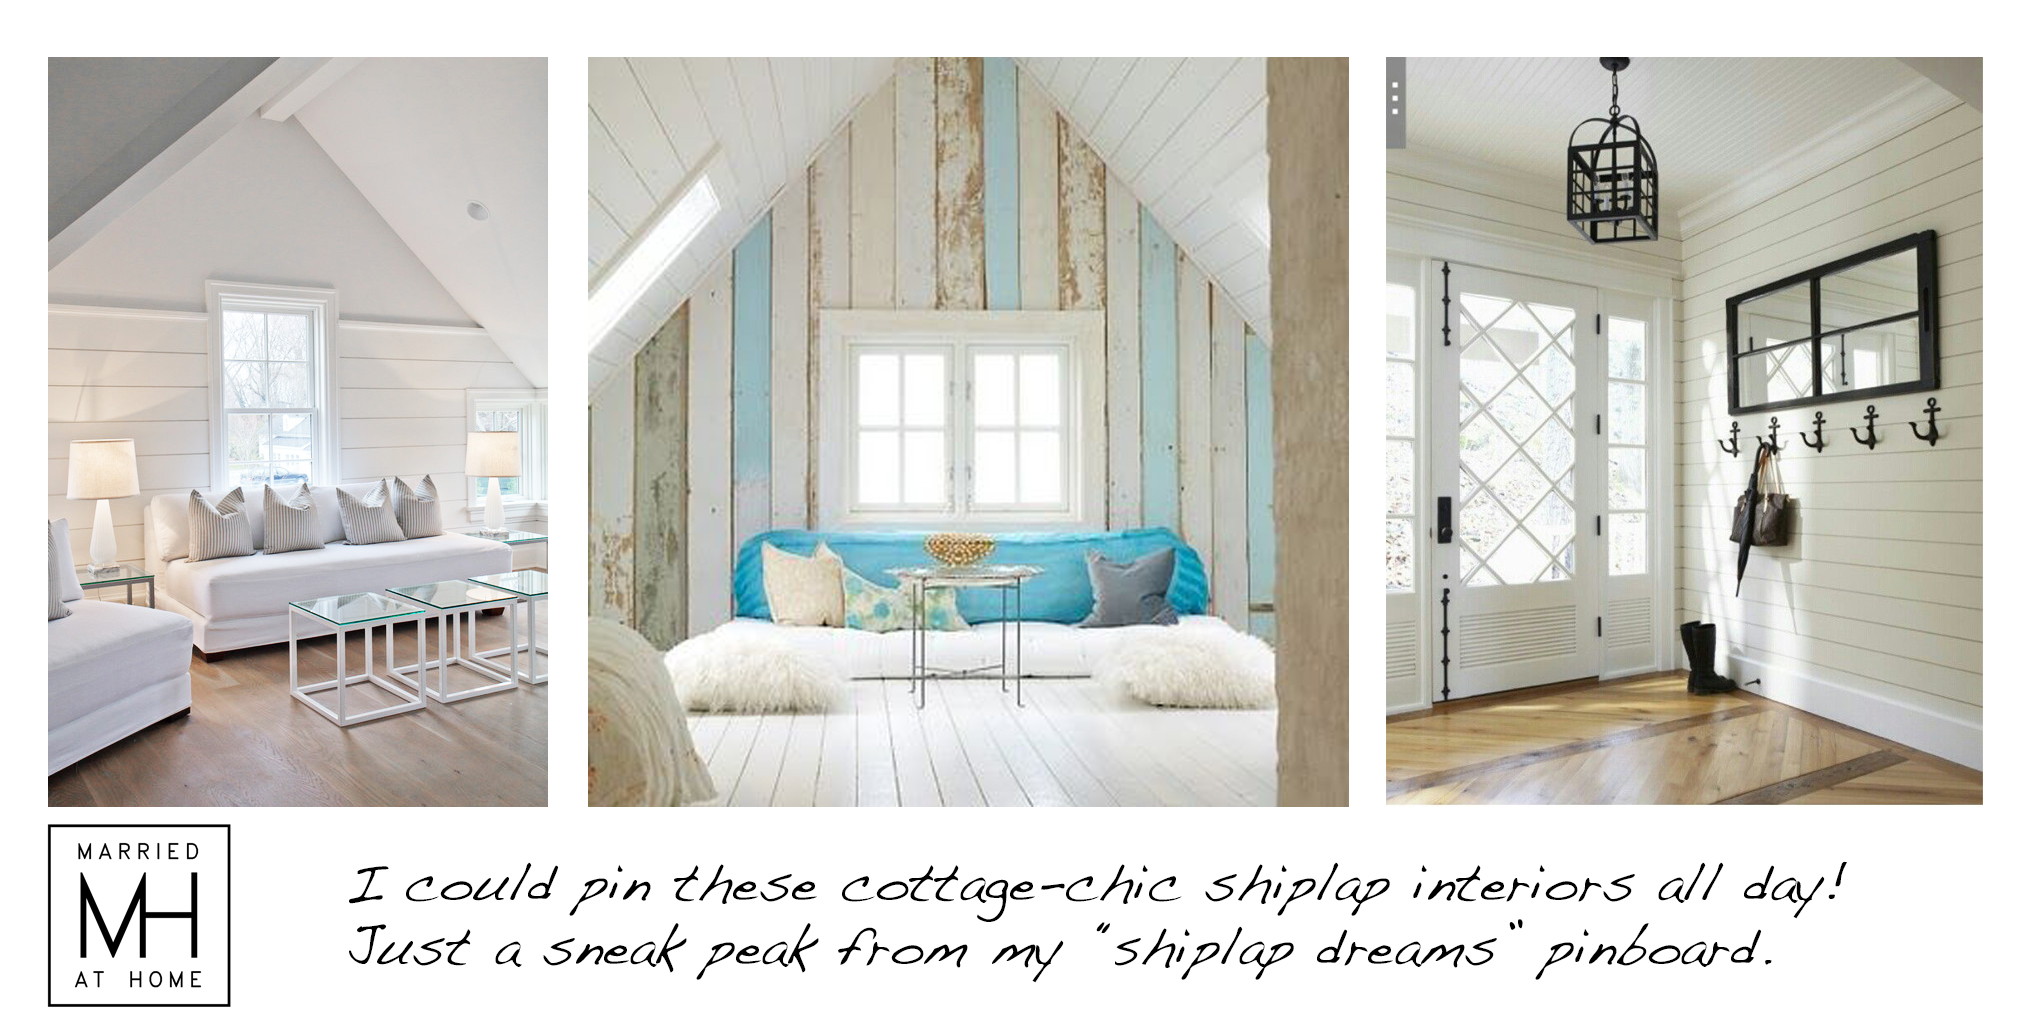 Shiplap Dreams   Married At Home